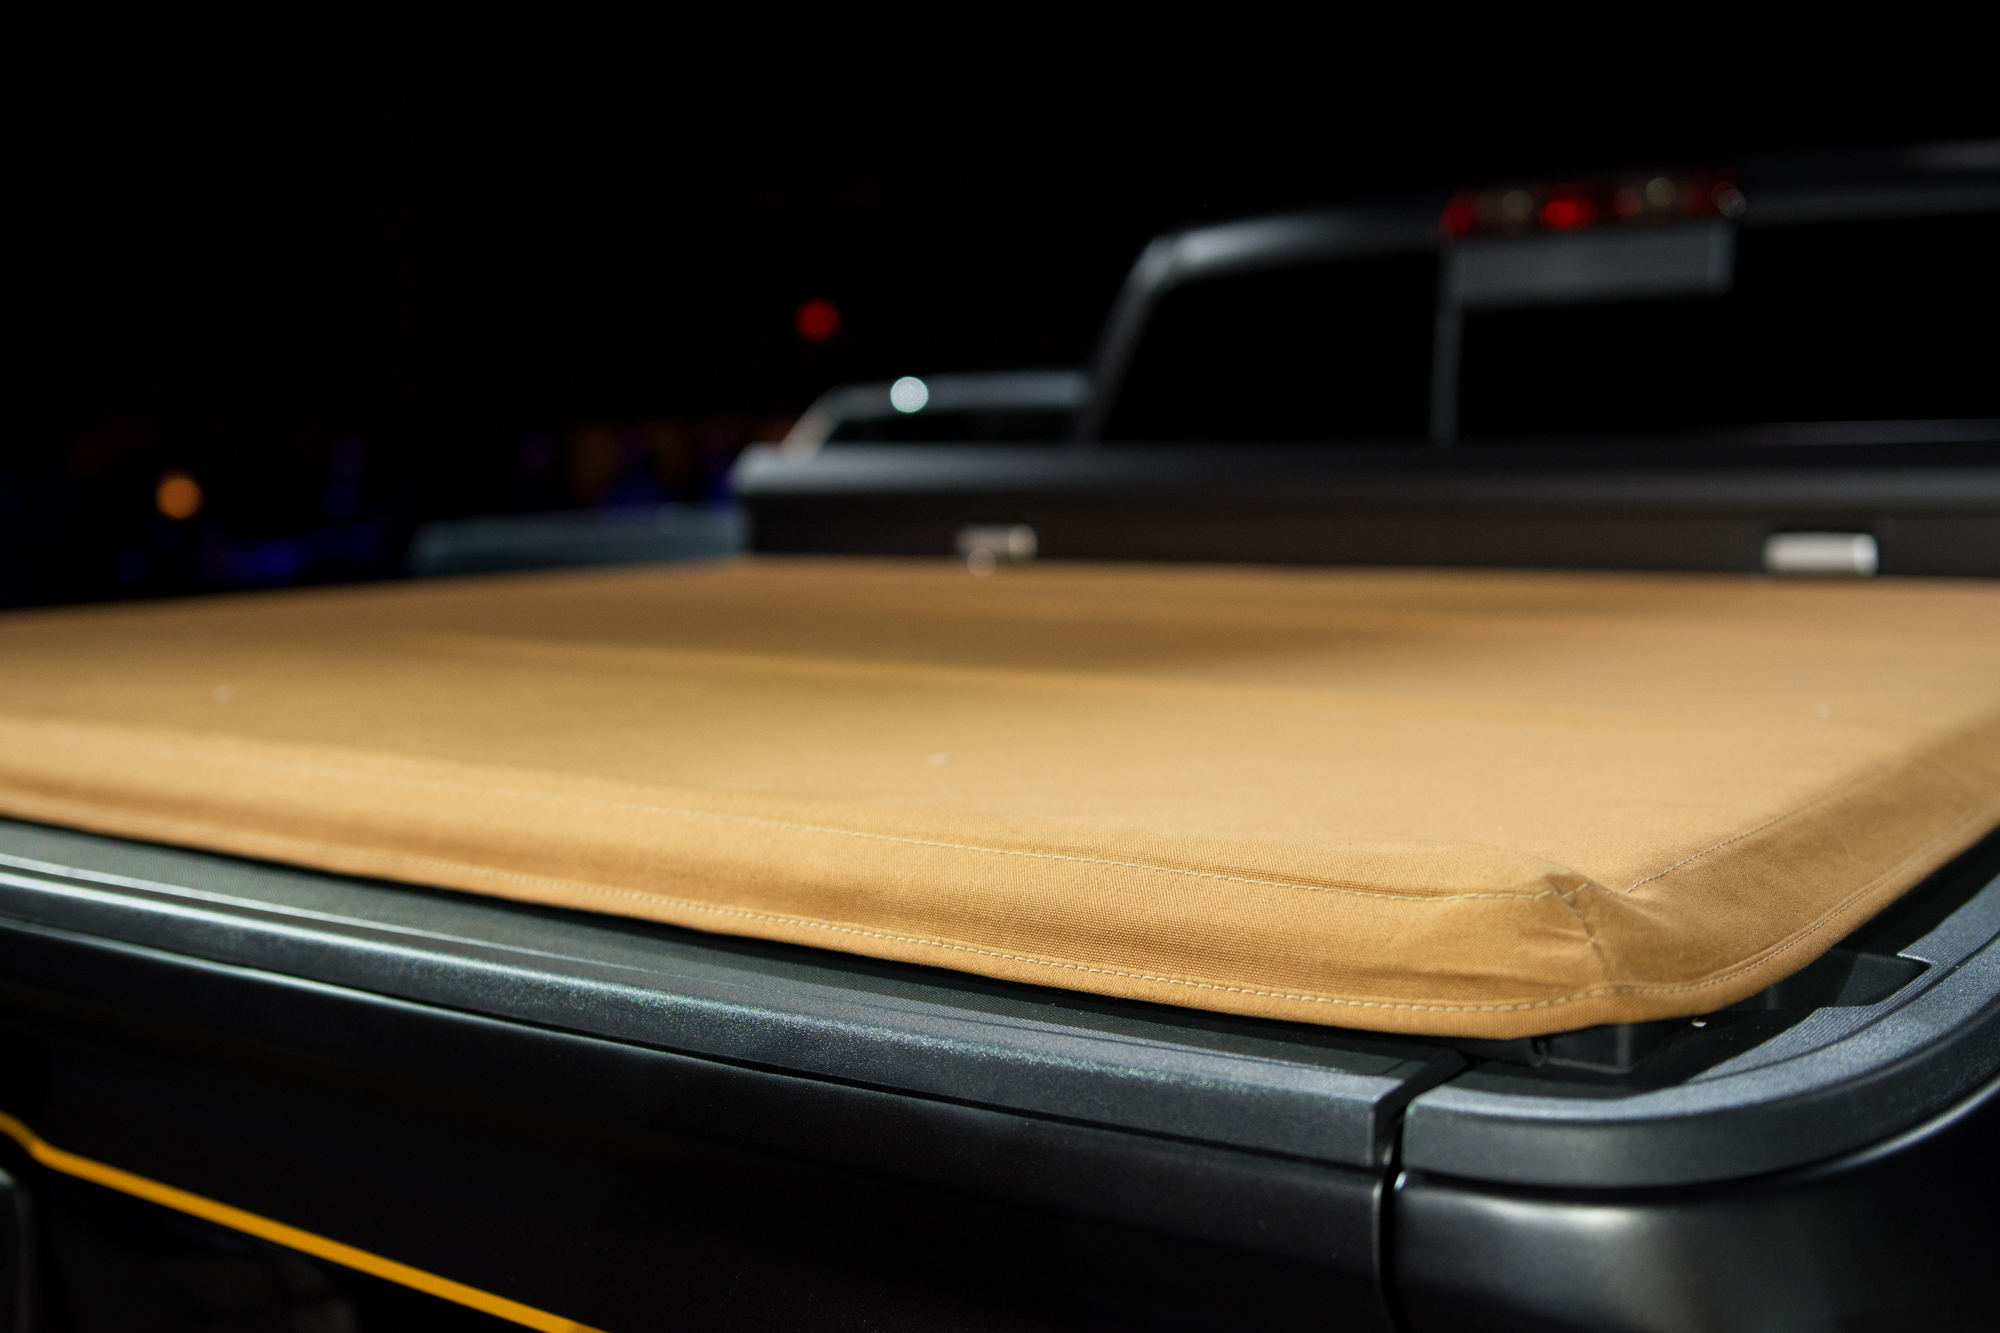 Carhartt Edition Chevy >> Chevy unveils Carhartt Silverado 2500HD, a sharp work truck literally covered in duck brown fabric